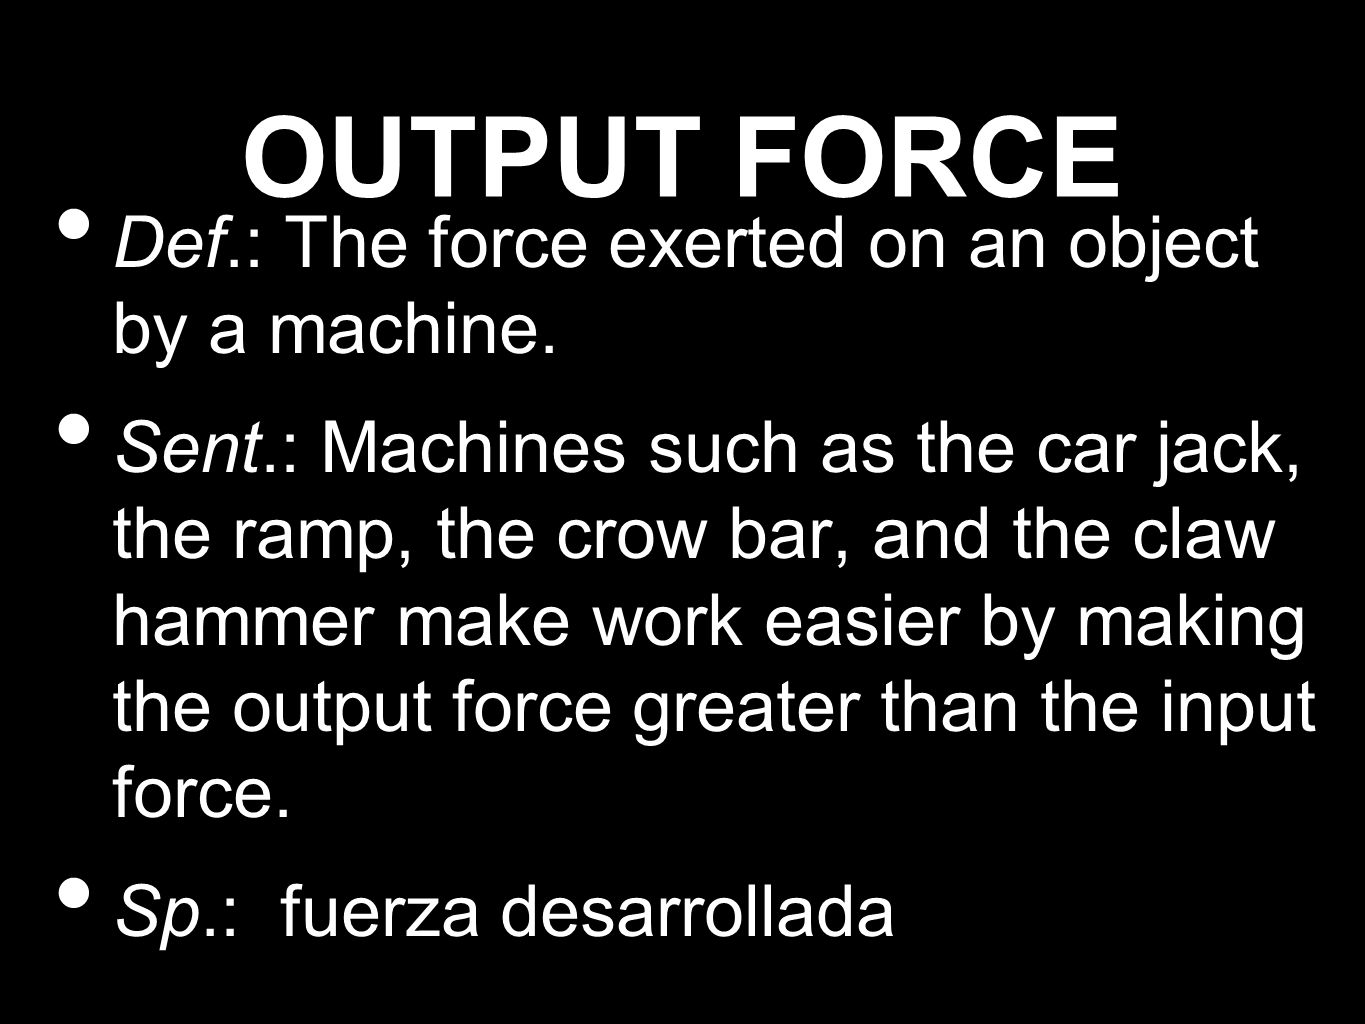 OUTPUT FORCE Def.: The force exerted on an object by a machine.